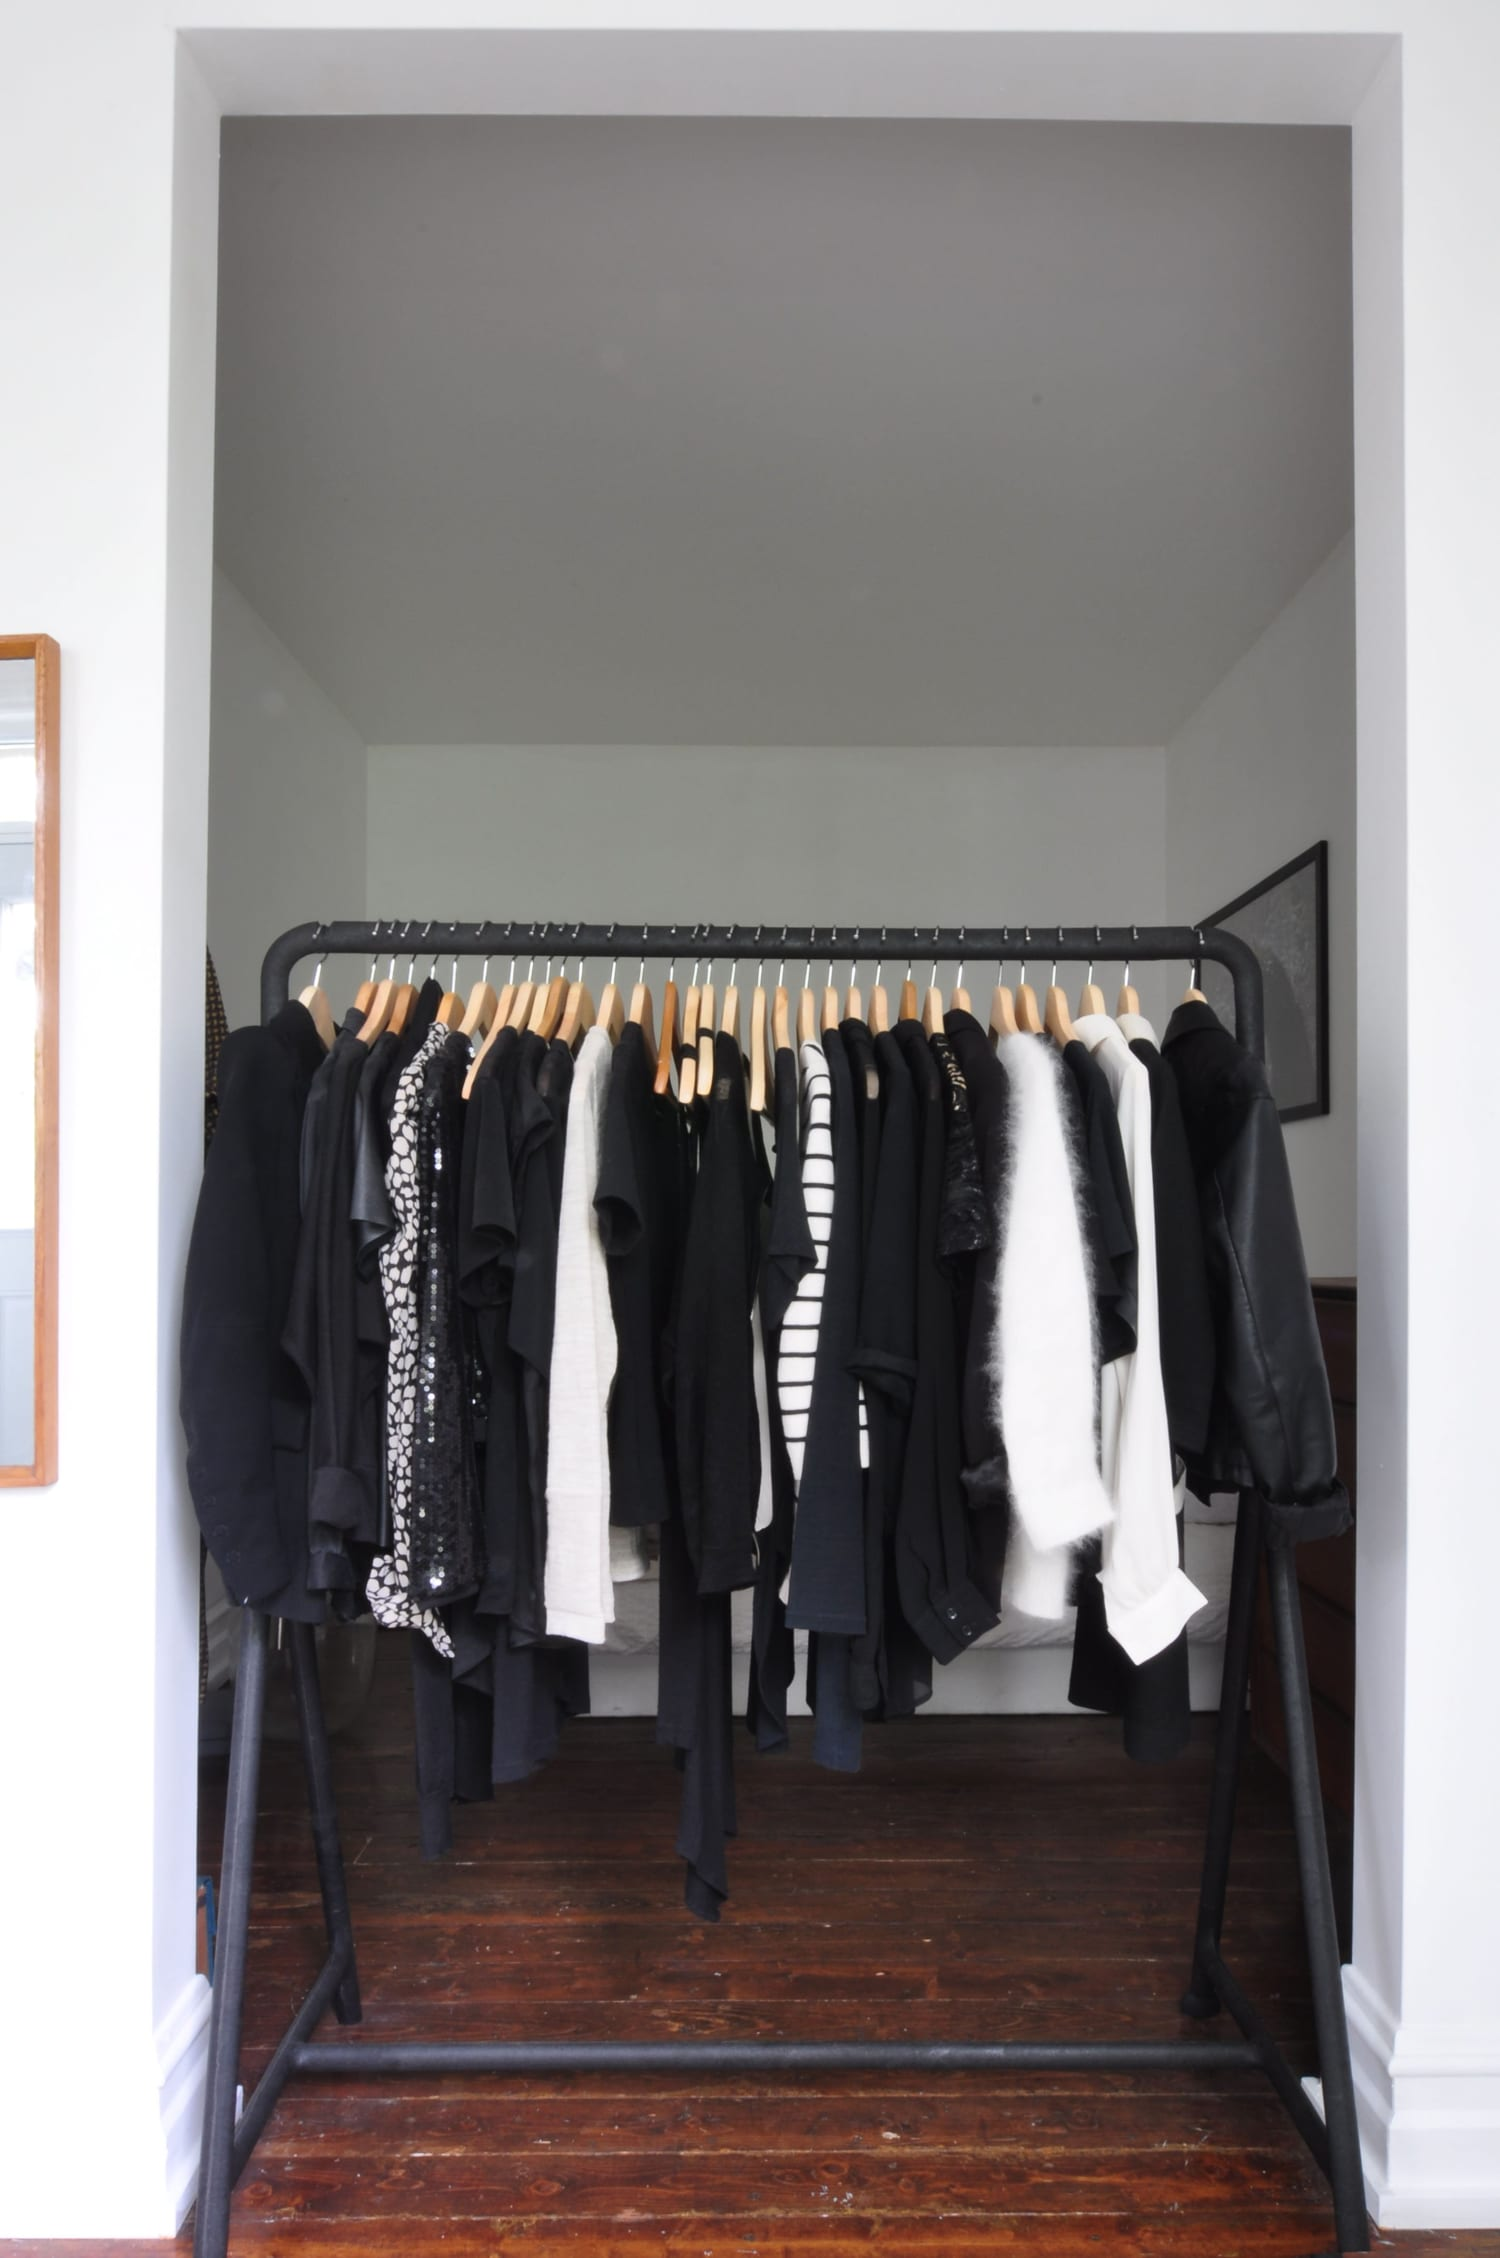 My Capsule Wardrobe Experiment: Part Three – Lessons Learned, Tips & Takeaways